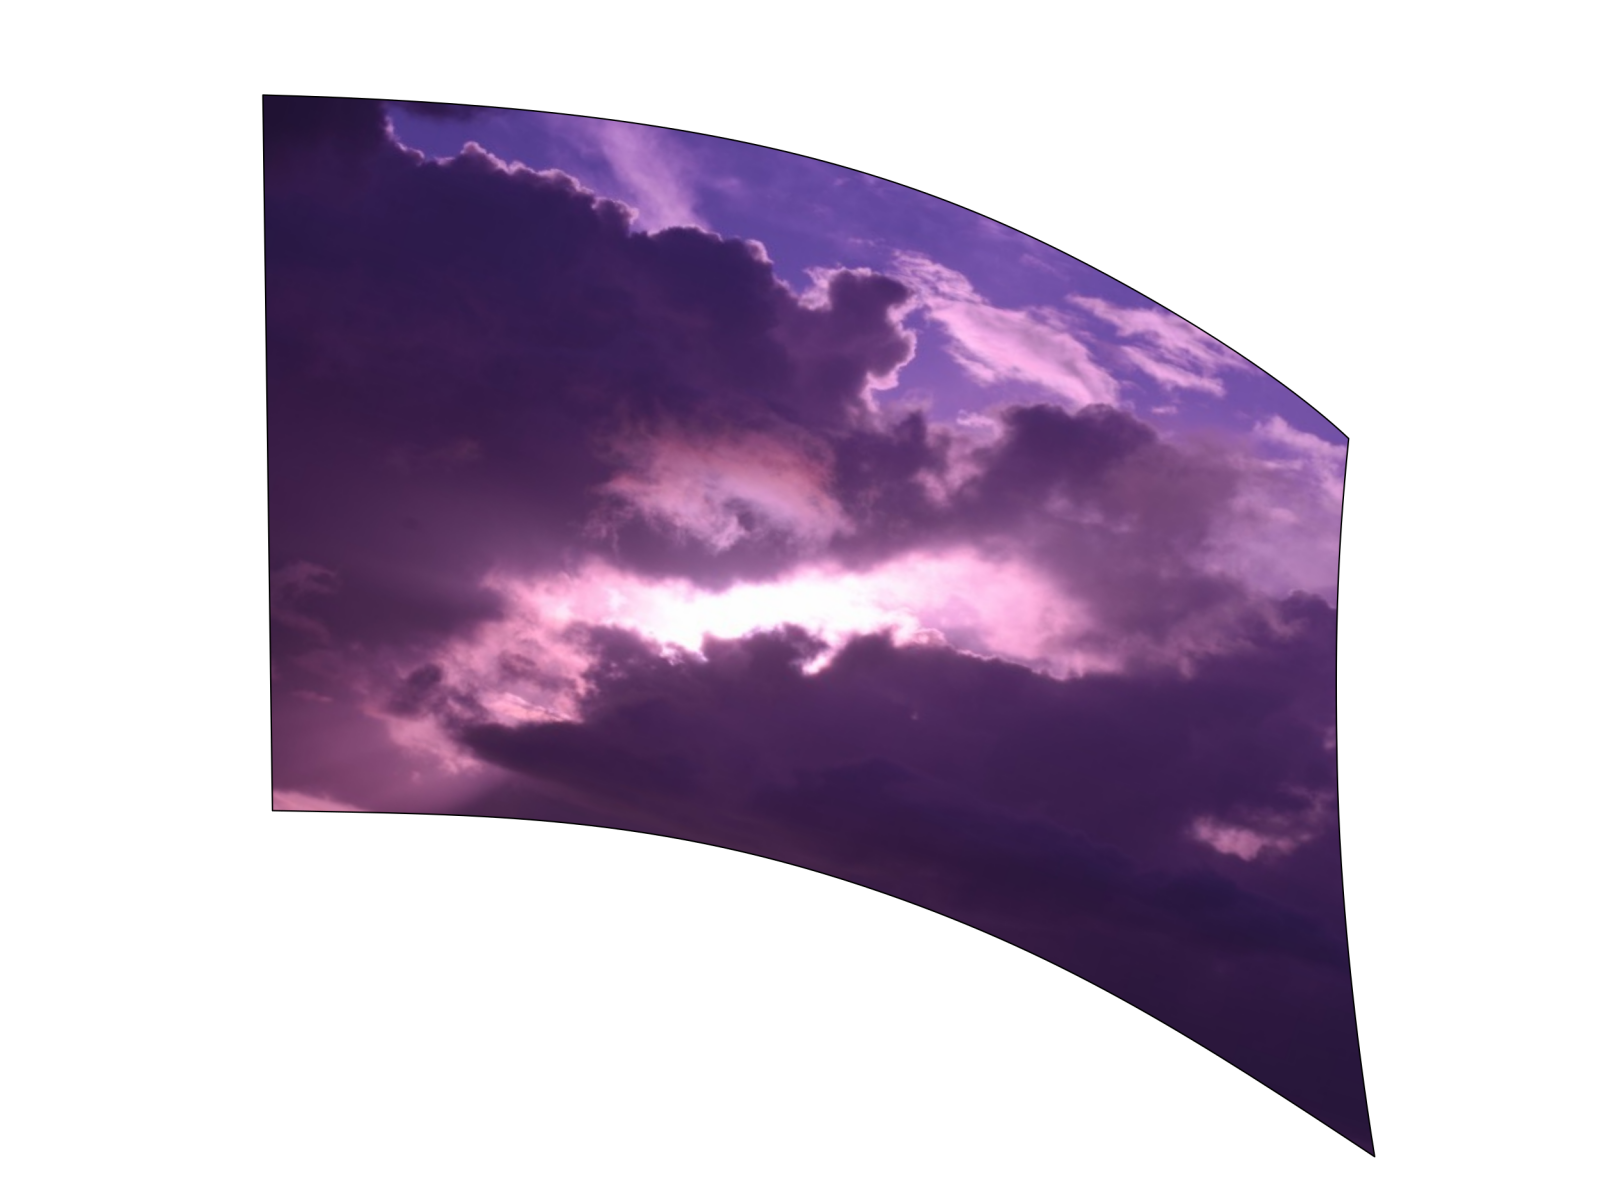 050310s - 36x52 Standard Purple Clouds 1